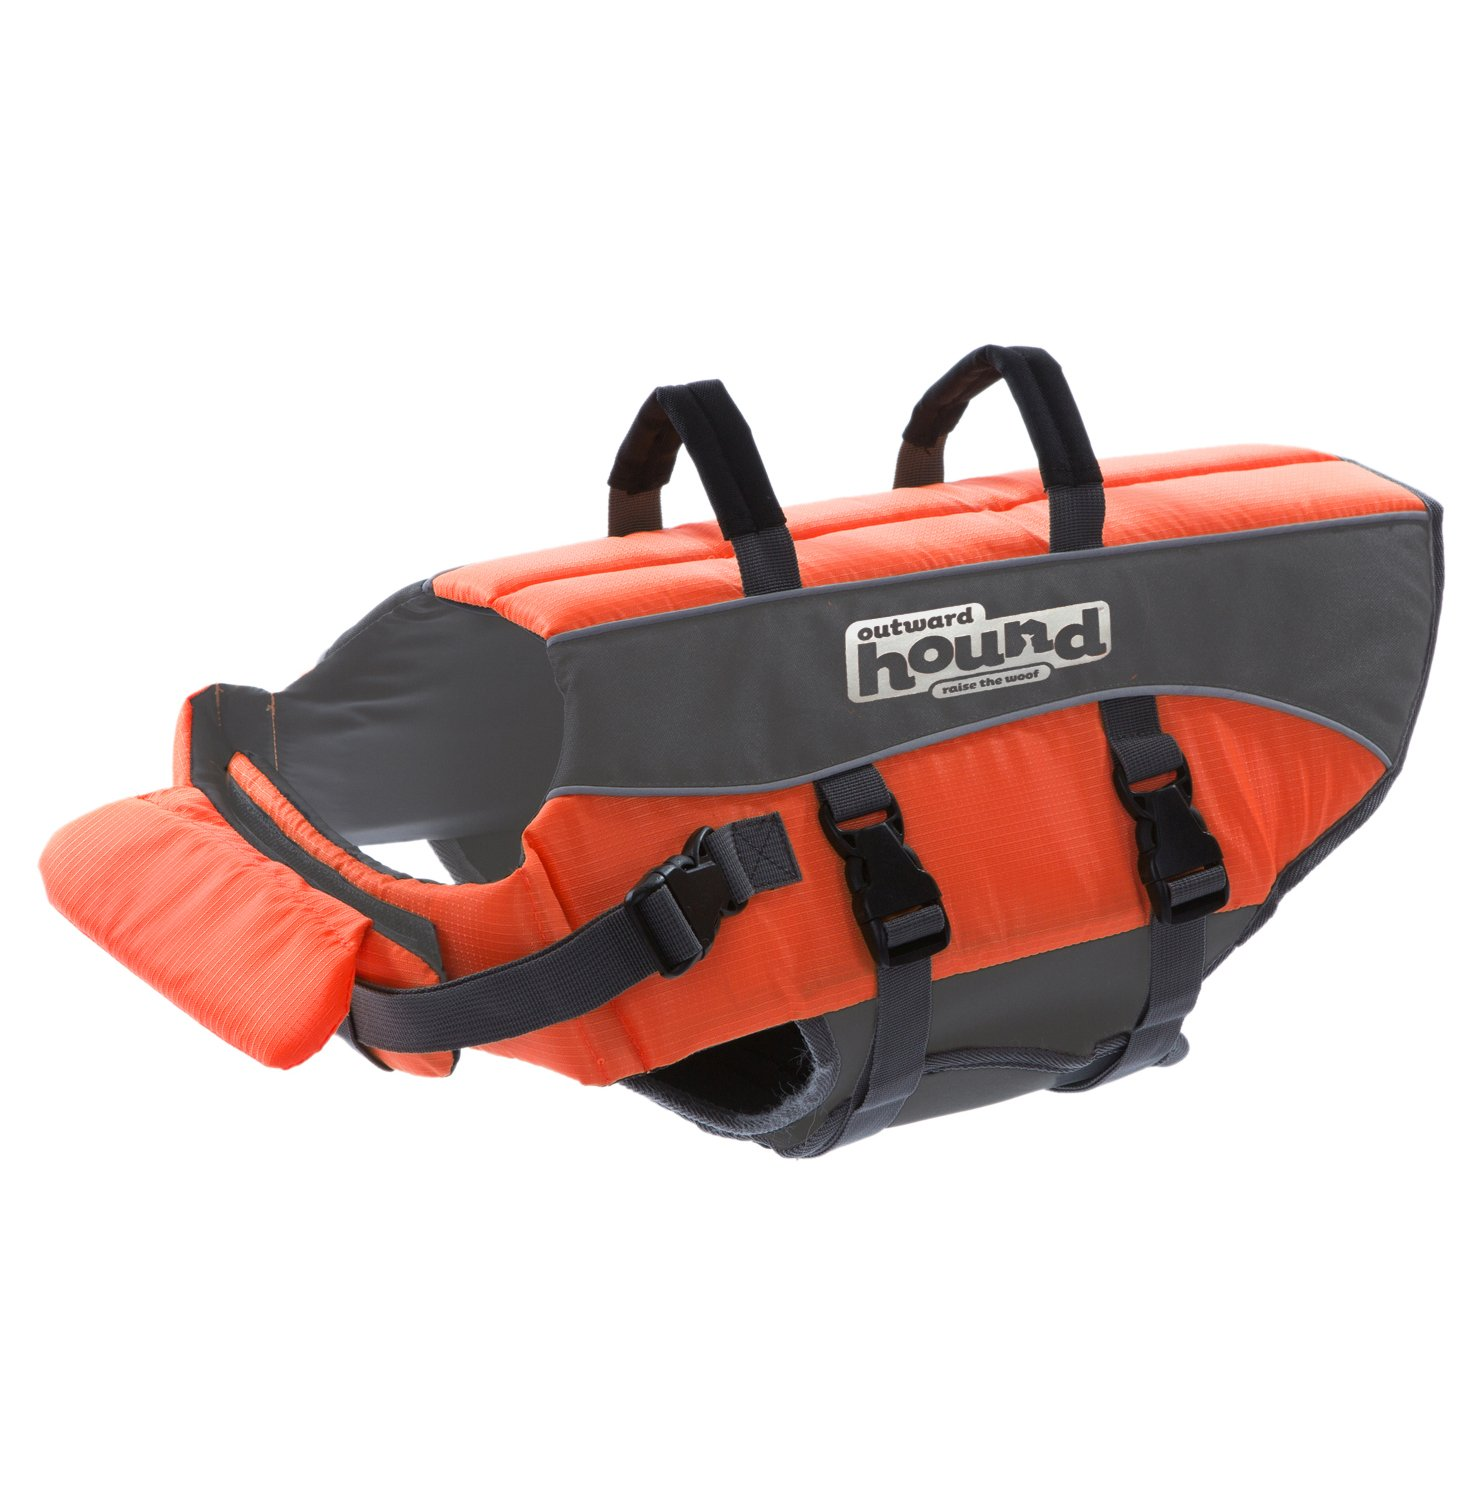 Outward Hound Ripstop Dog Life Jacket Orange Large